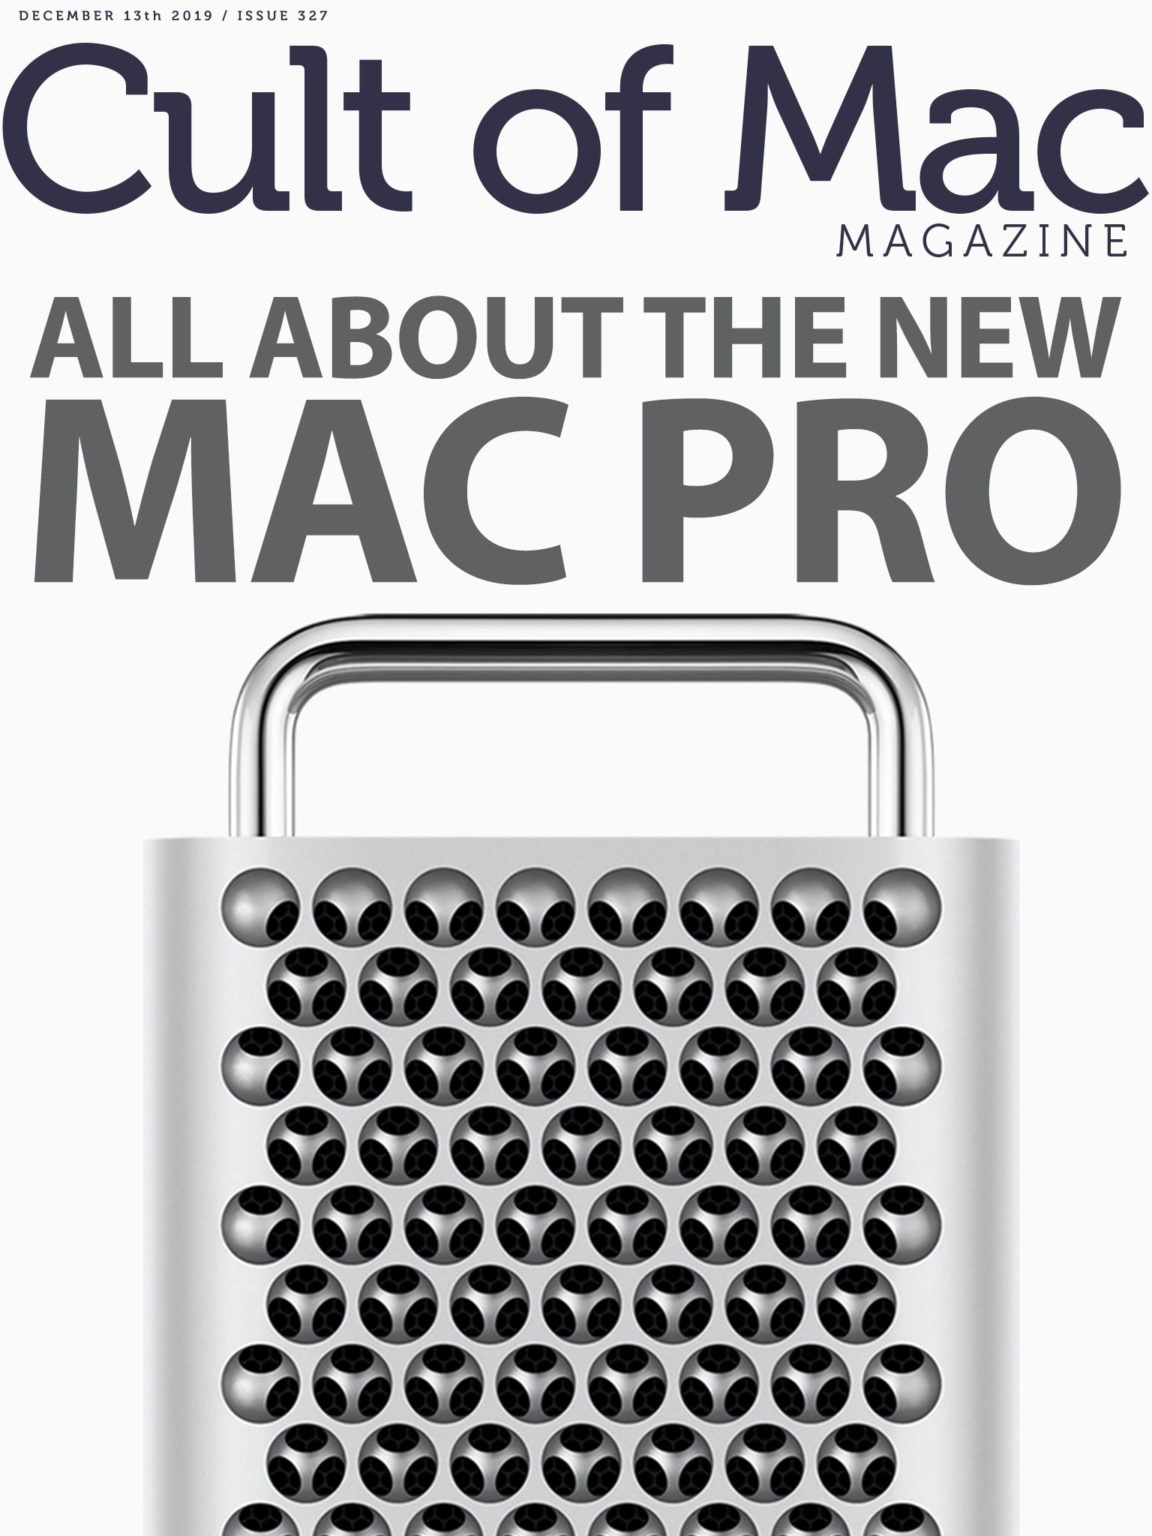 It's a Mac. For pros? What else is there to say? (Plenty, actually.)